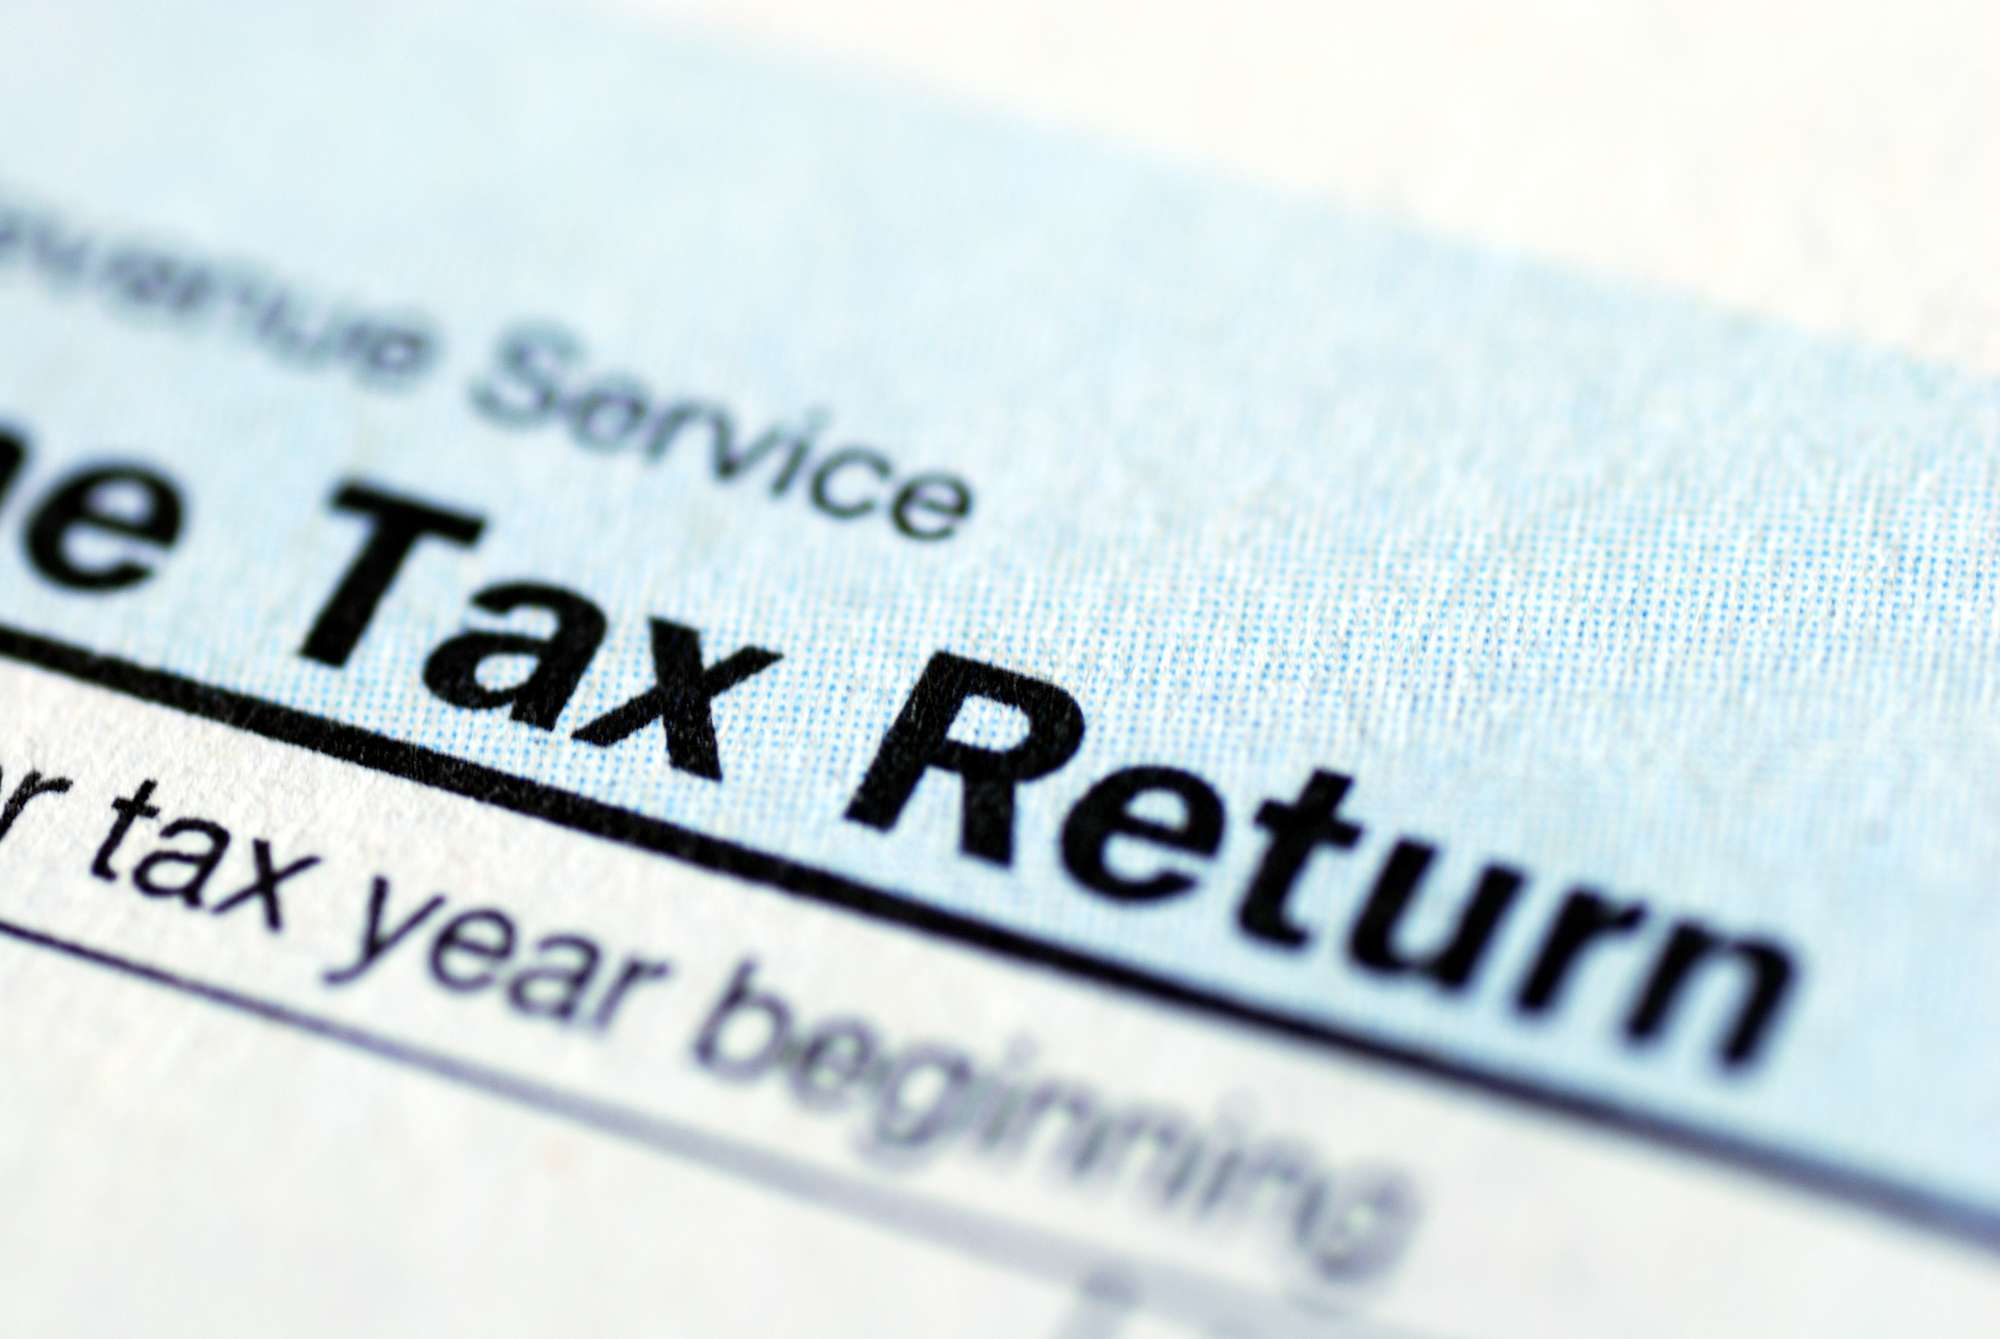 if you forgot to file some tax returns